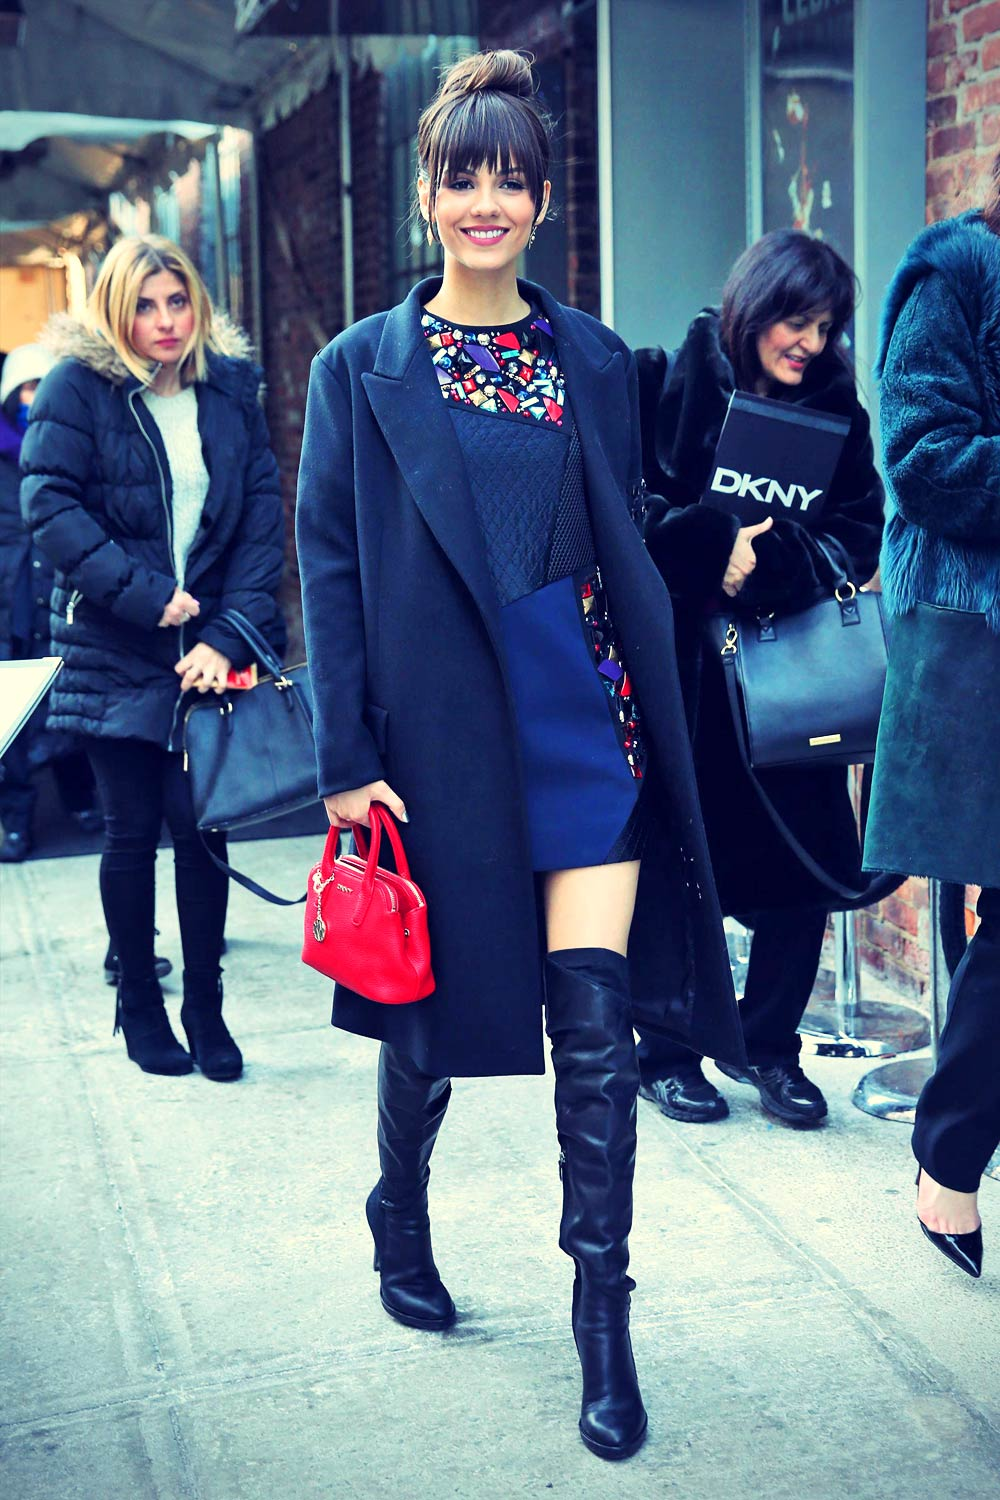 Victoria Justice Attends Dkny Fashion Show Leather